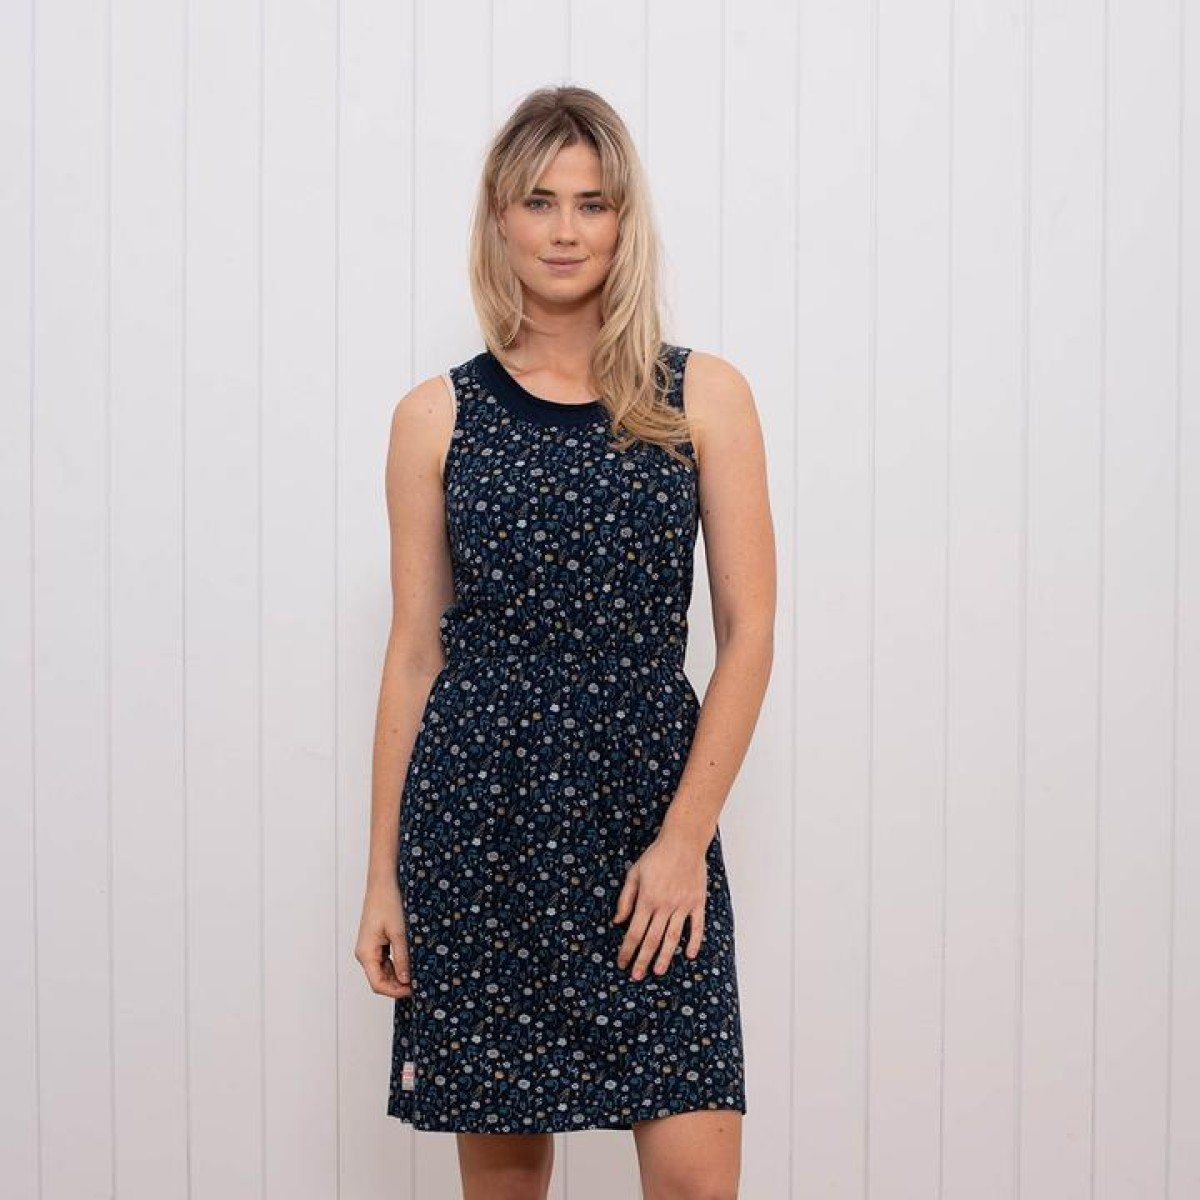 a1115fc2e947 Brakeburn Ditsy Jersey Beach Dress - Navy - Flagship Boutique